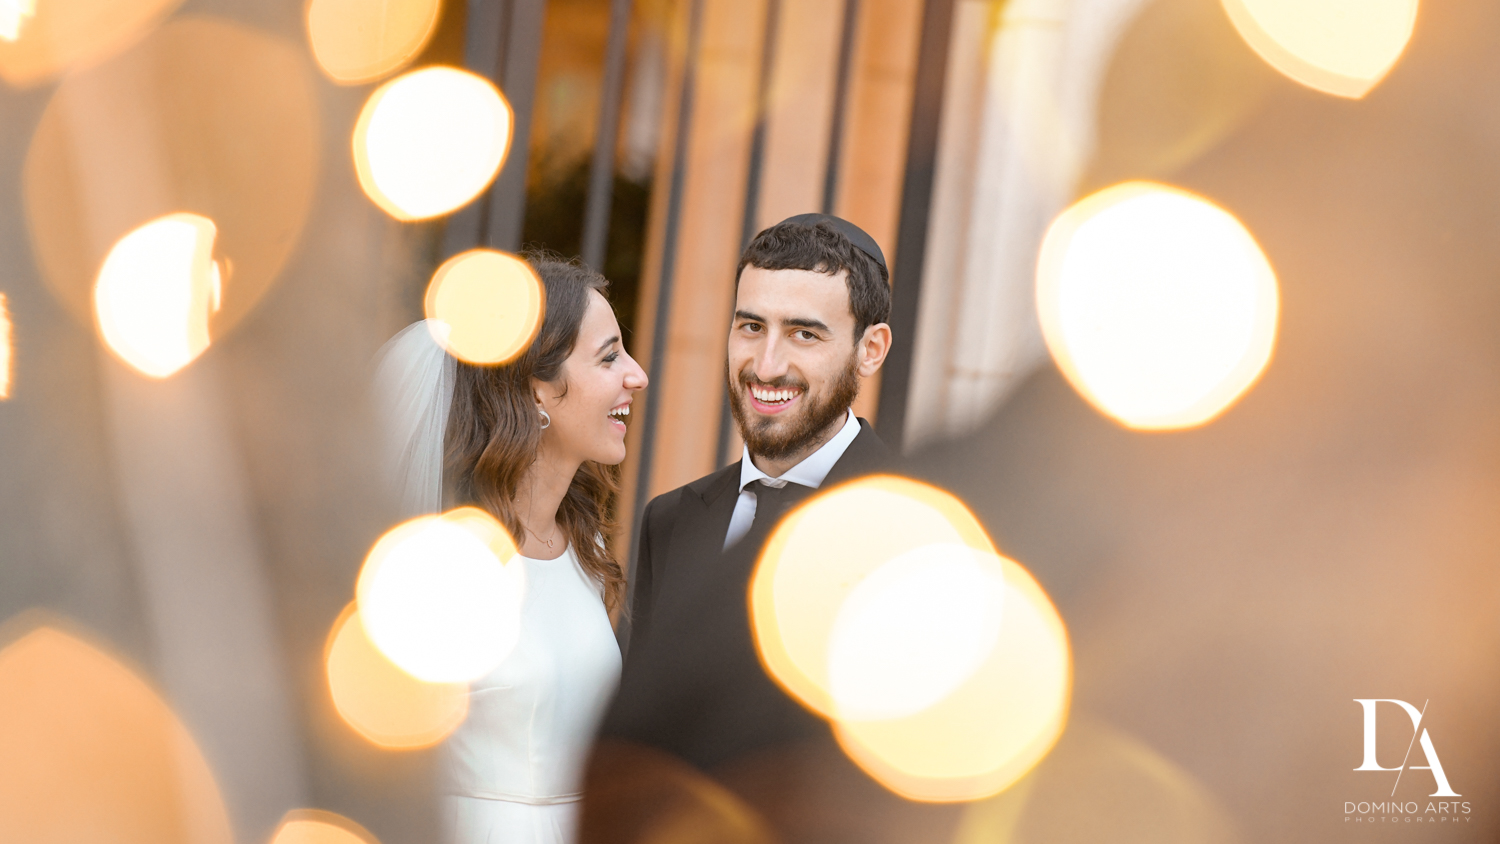 creative portraits at Hasidic Jewish Wedding at The Addison in Boca Raton by Domino Arts Photography